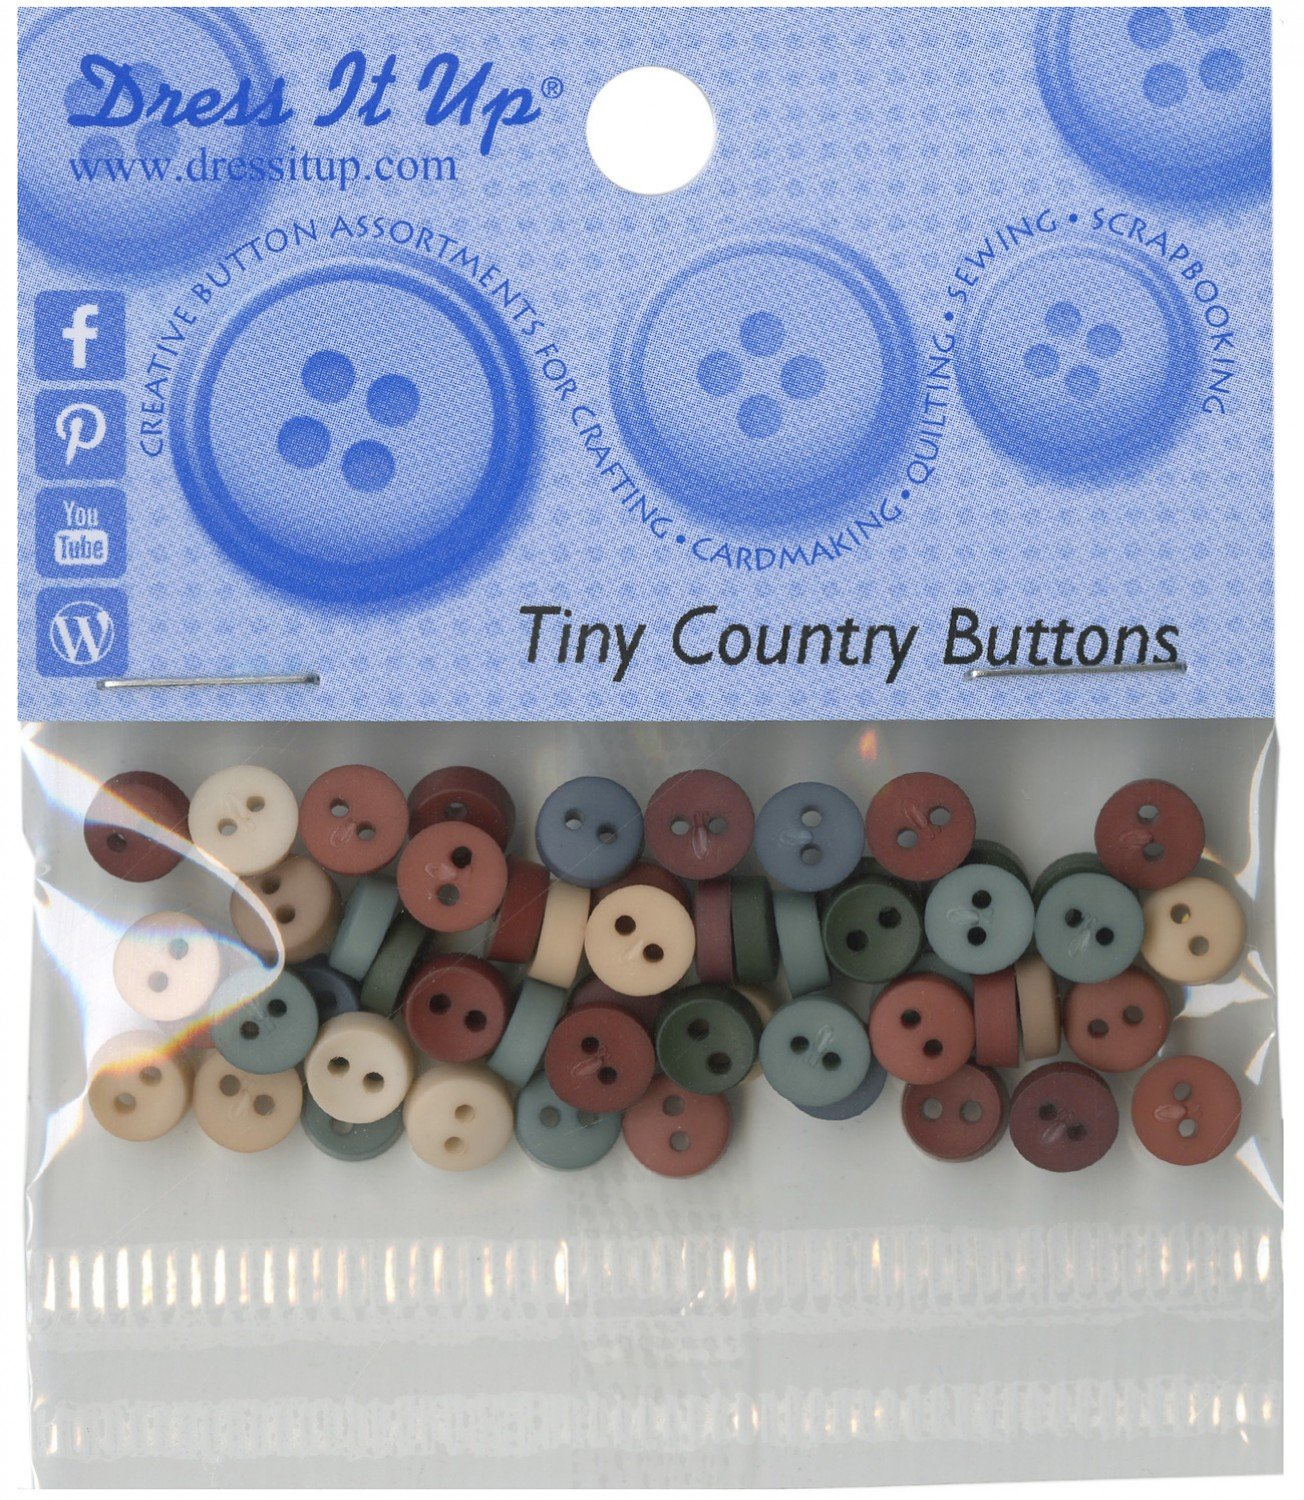 Tiny Country Buttons (35 Pieces)